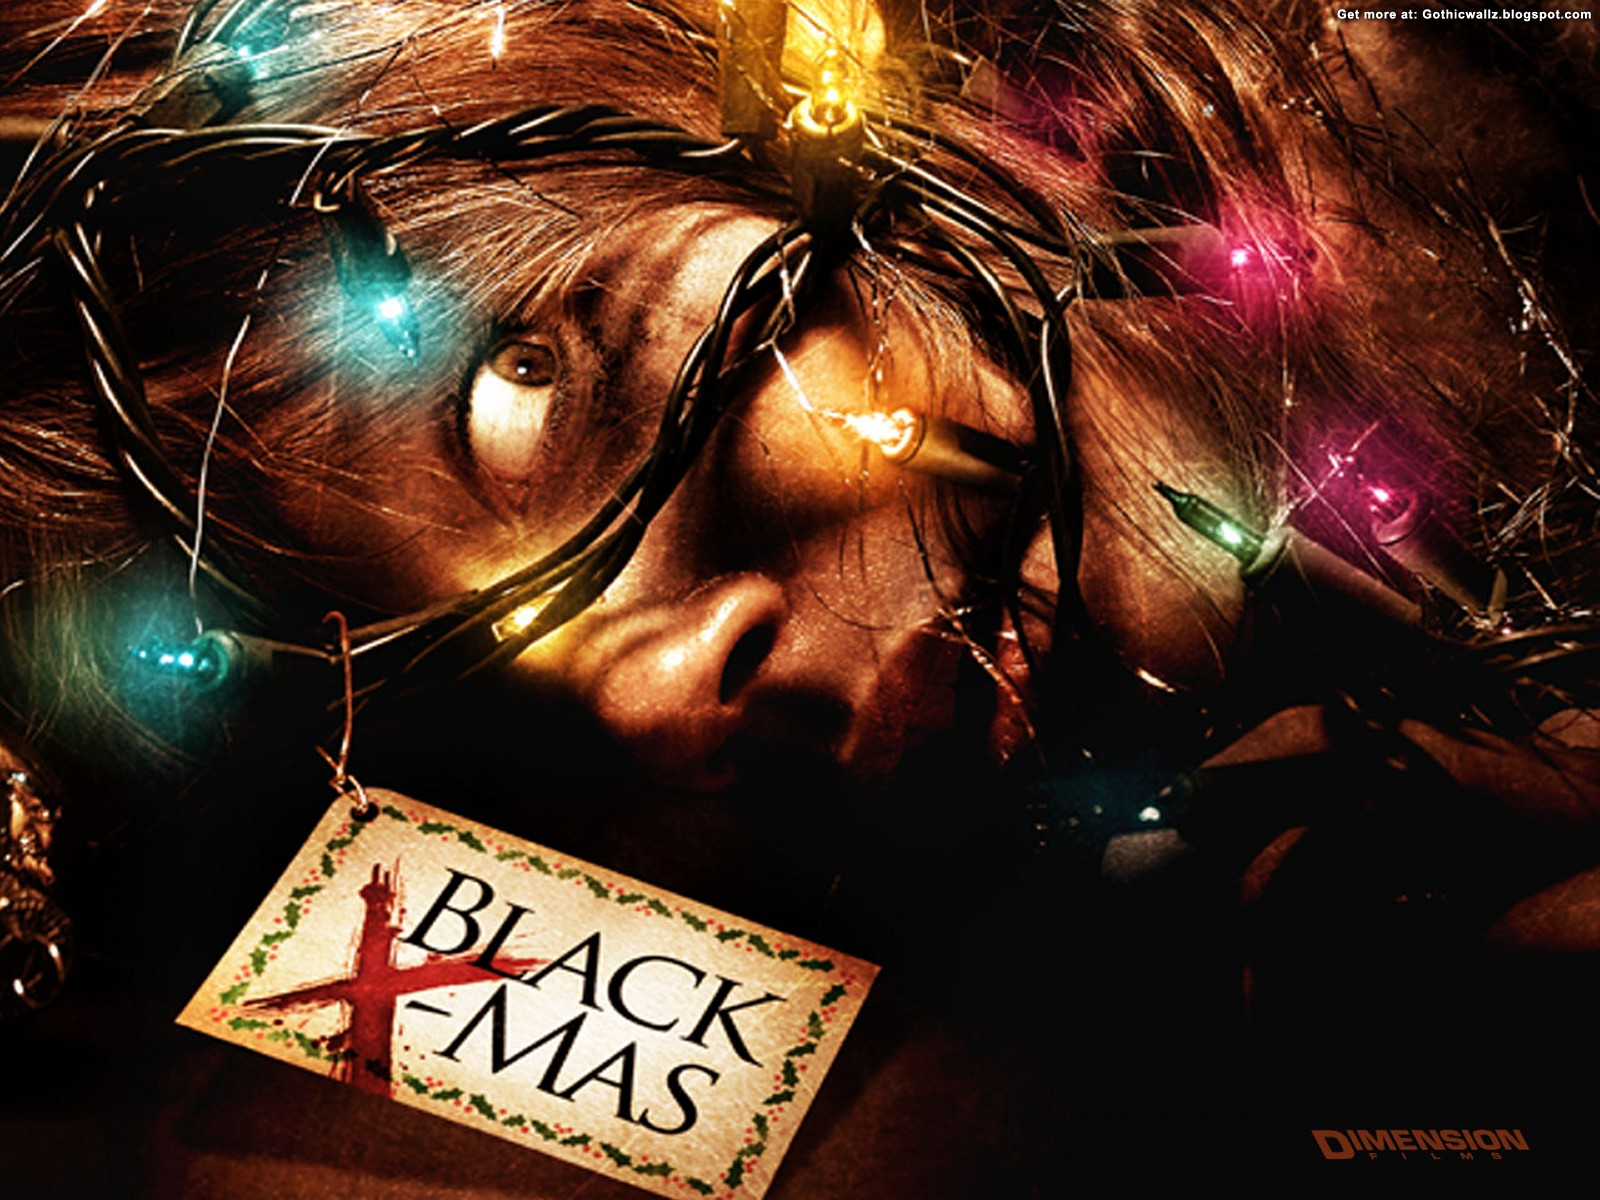 Black Christmas Wallpaper 3 | Gothic Wallpaper Download